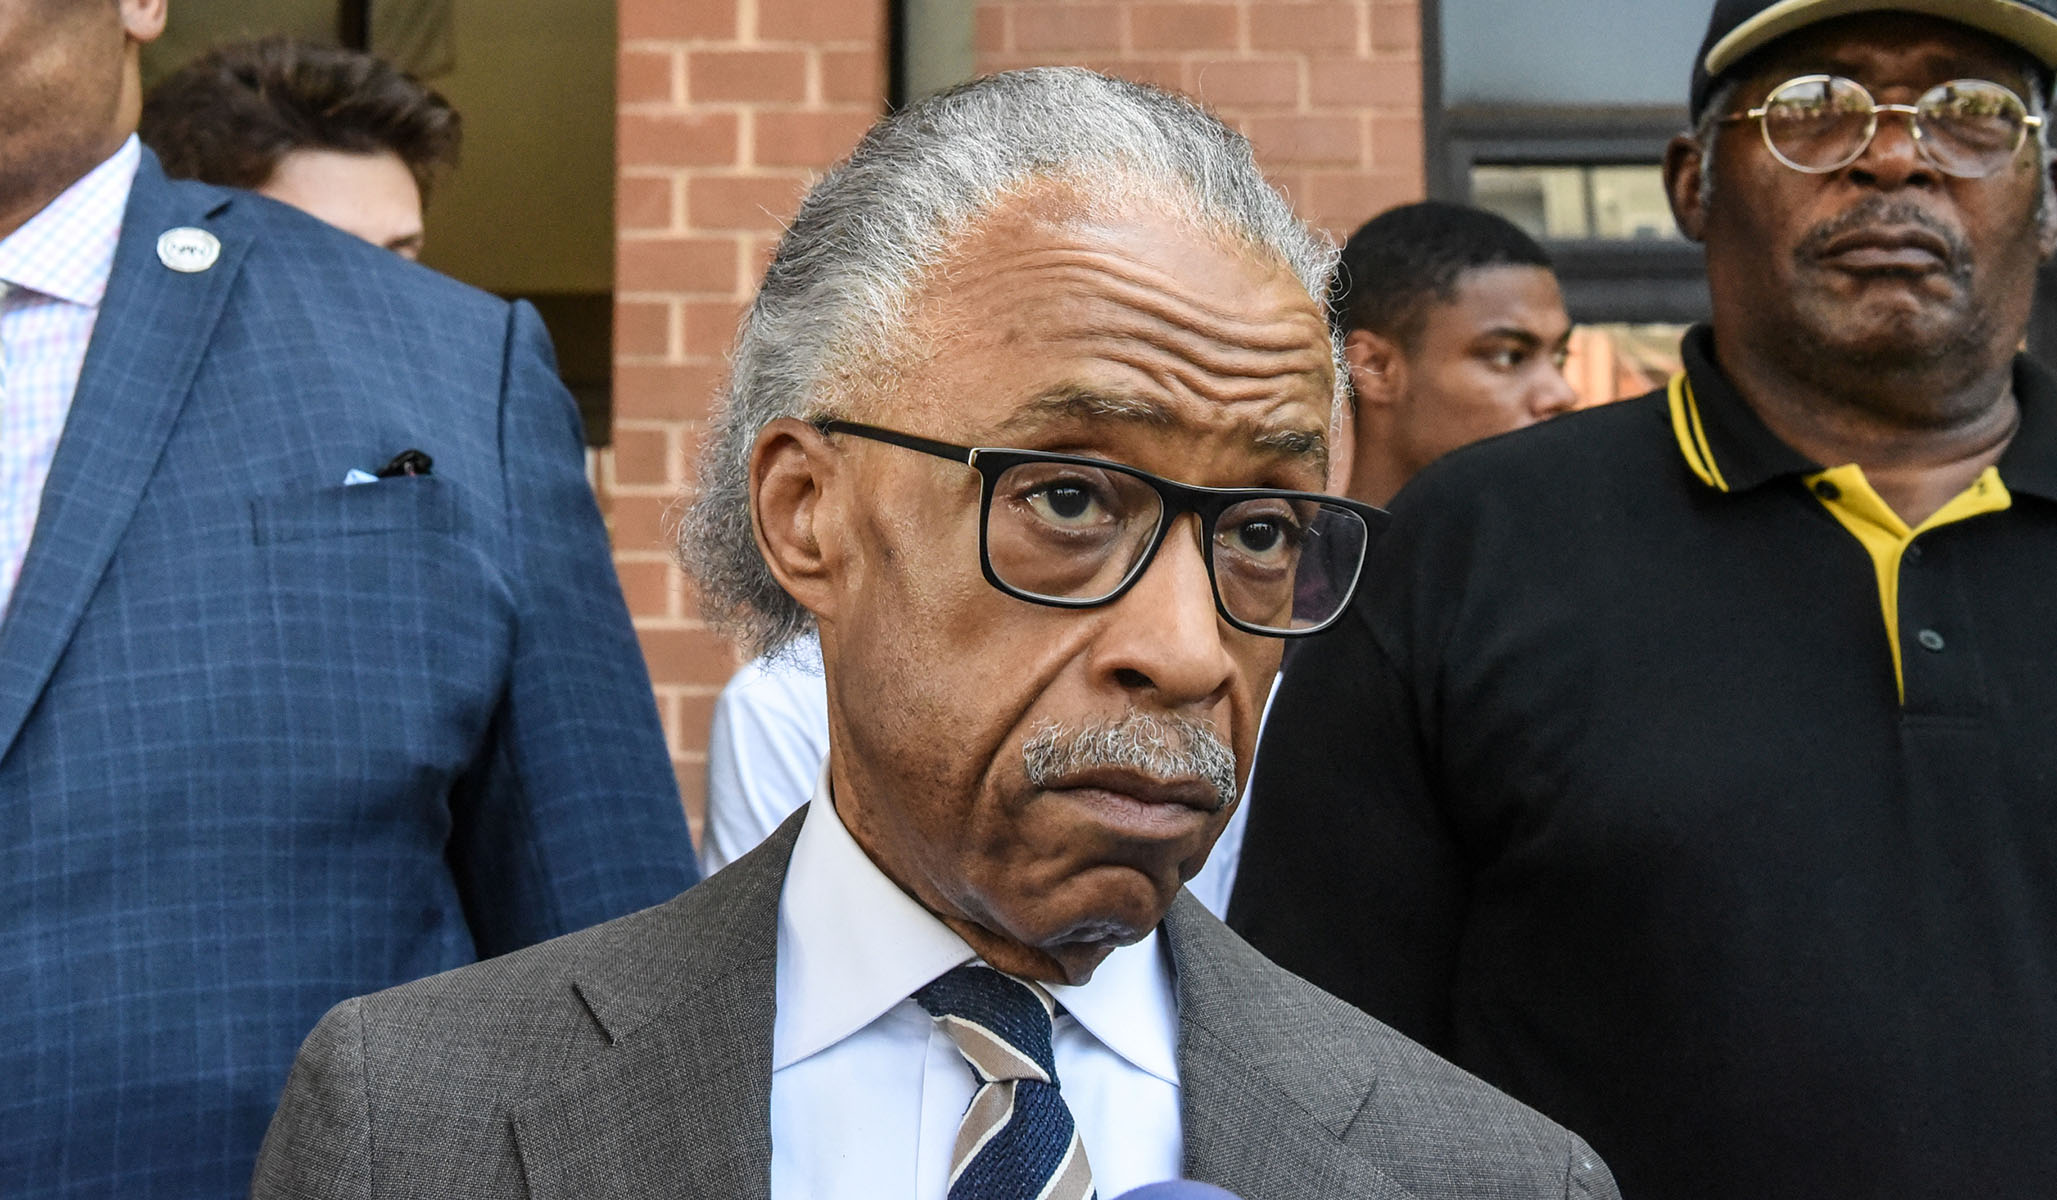 AL Sharpton: Law Enforcement Involved In Capitol Riot Is 'The Least Surprising Thing To Me' 1/18/21